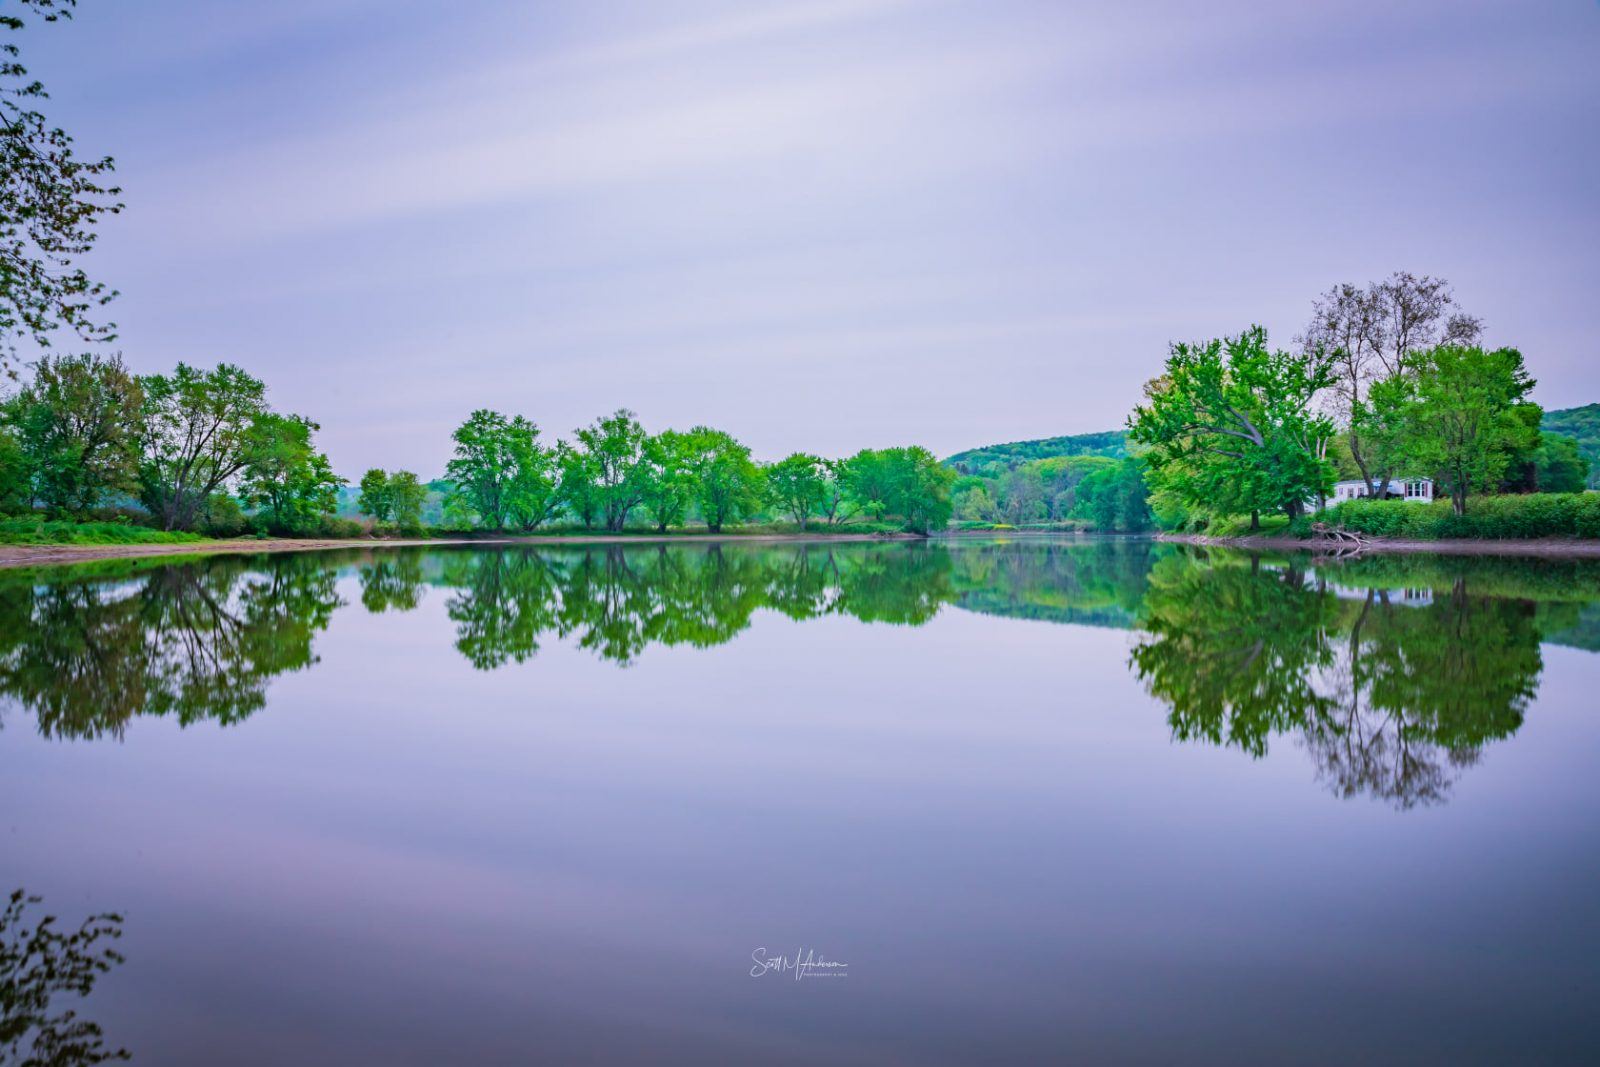 Riverside Tranquility 3